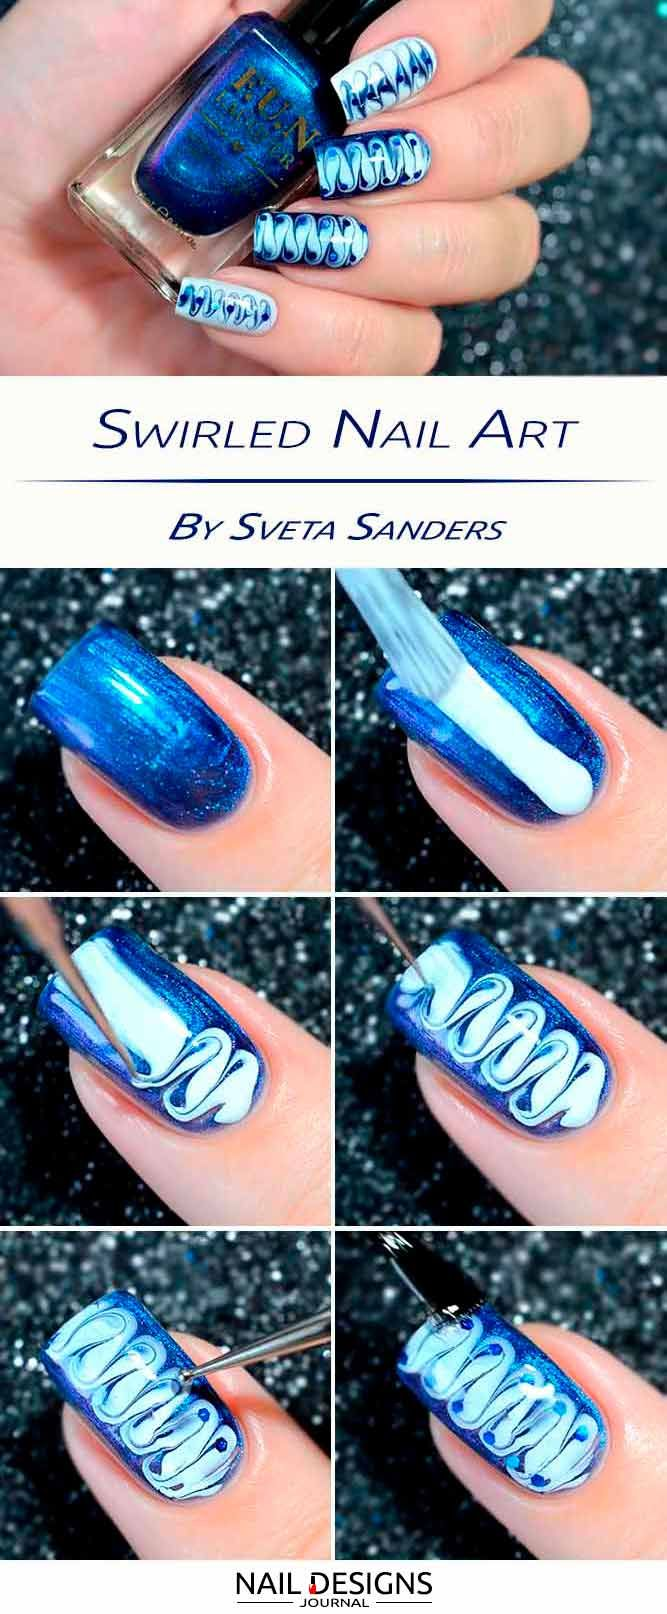 Quick Guide to 15 Stylish Yet Simple | Simple nail designs ...